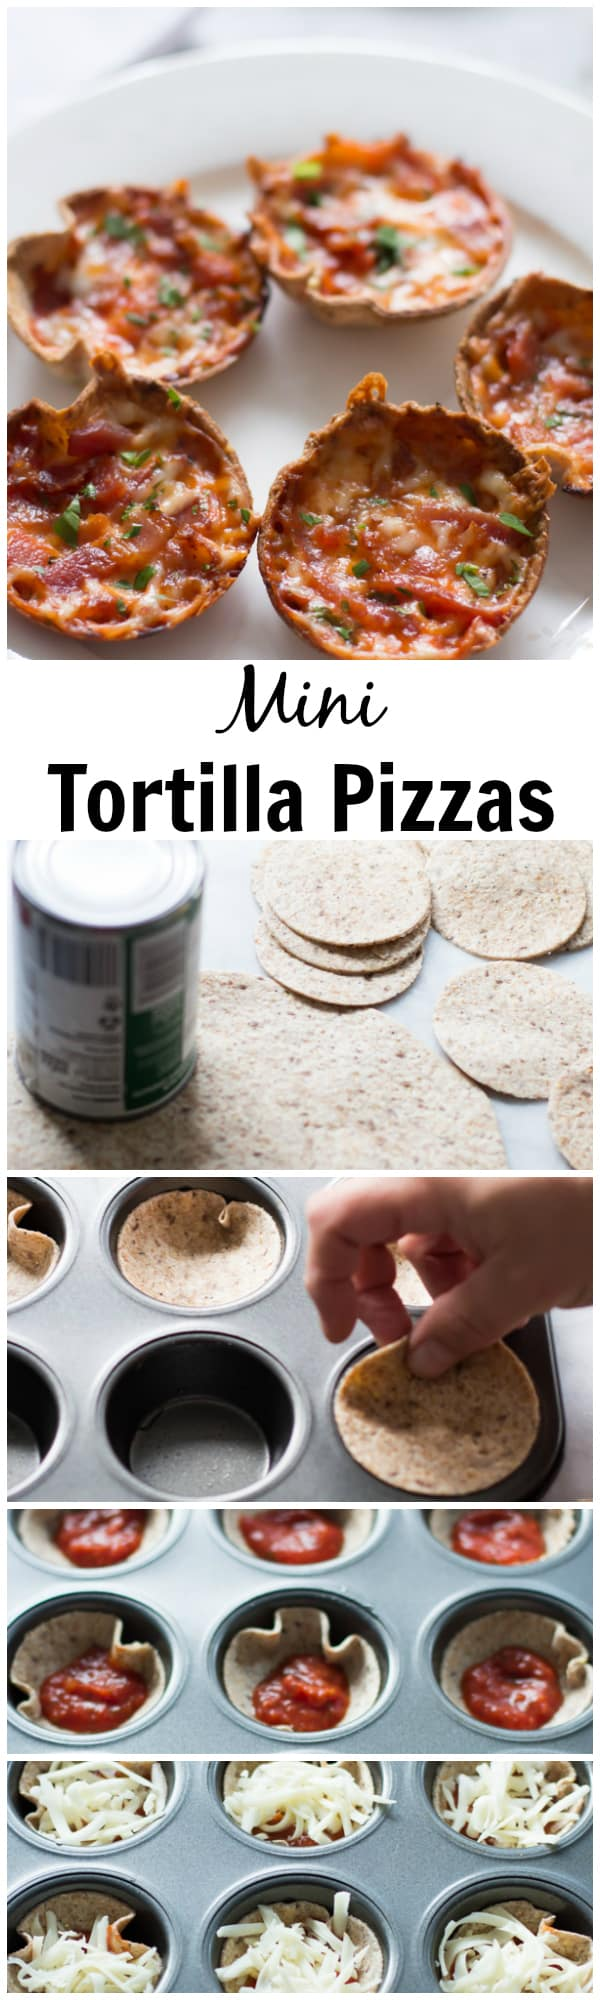 This easy and quick Mini Tortilla Pizzas recipe is delicious and just need 5 ingredients! You and your family will love it! Enjoy!